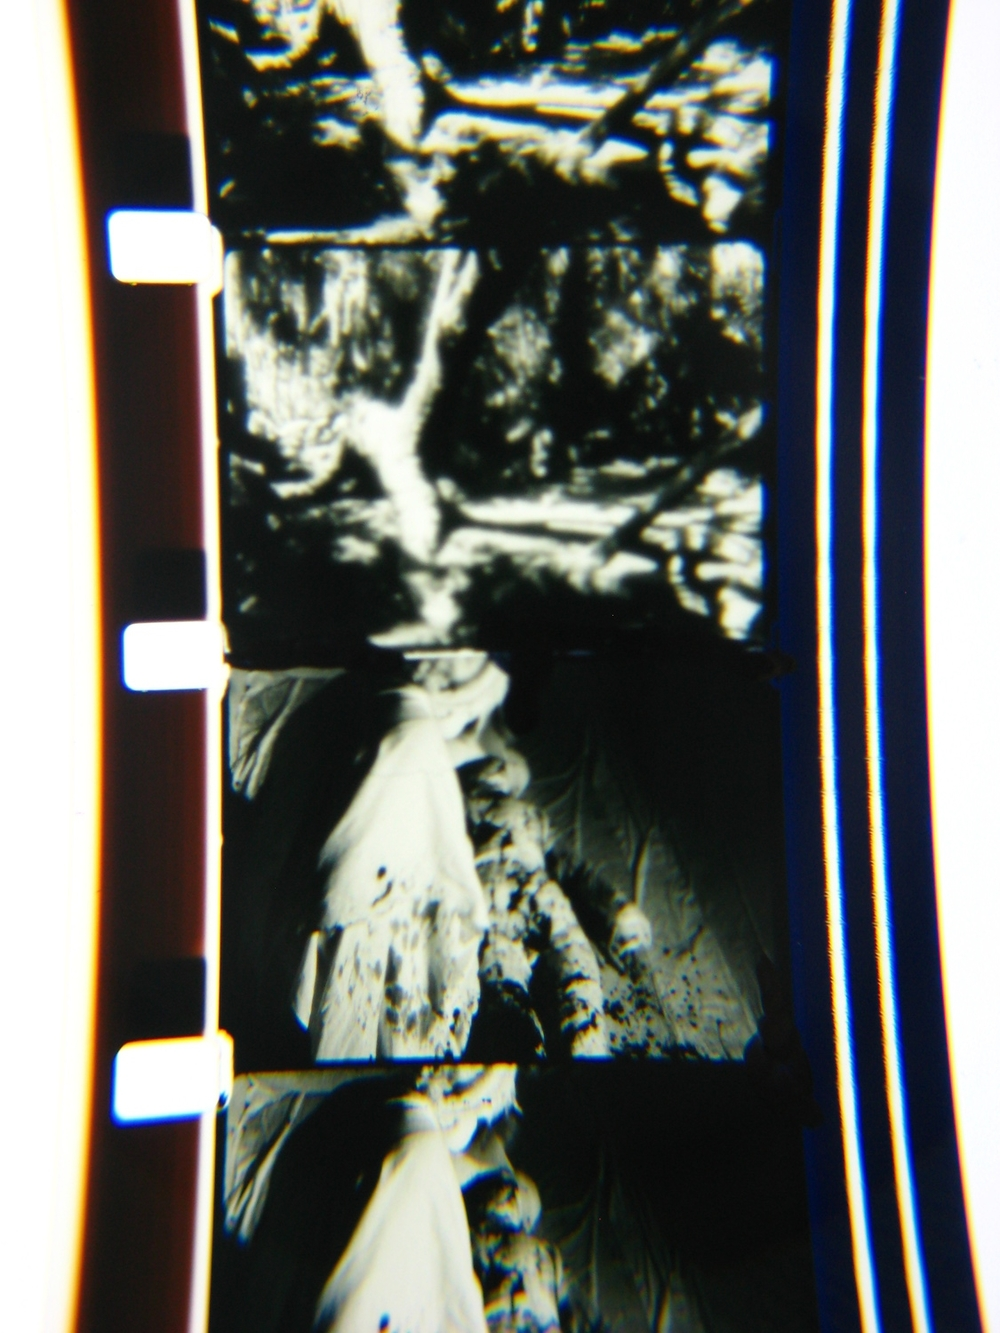 "16mm Film Still ""Tunnels"" 2010"